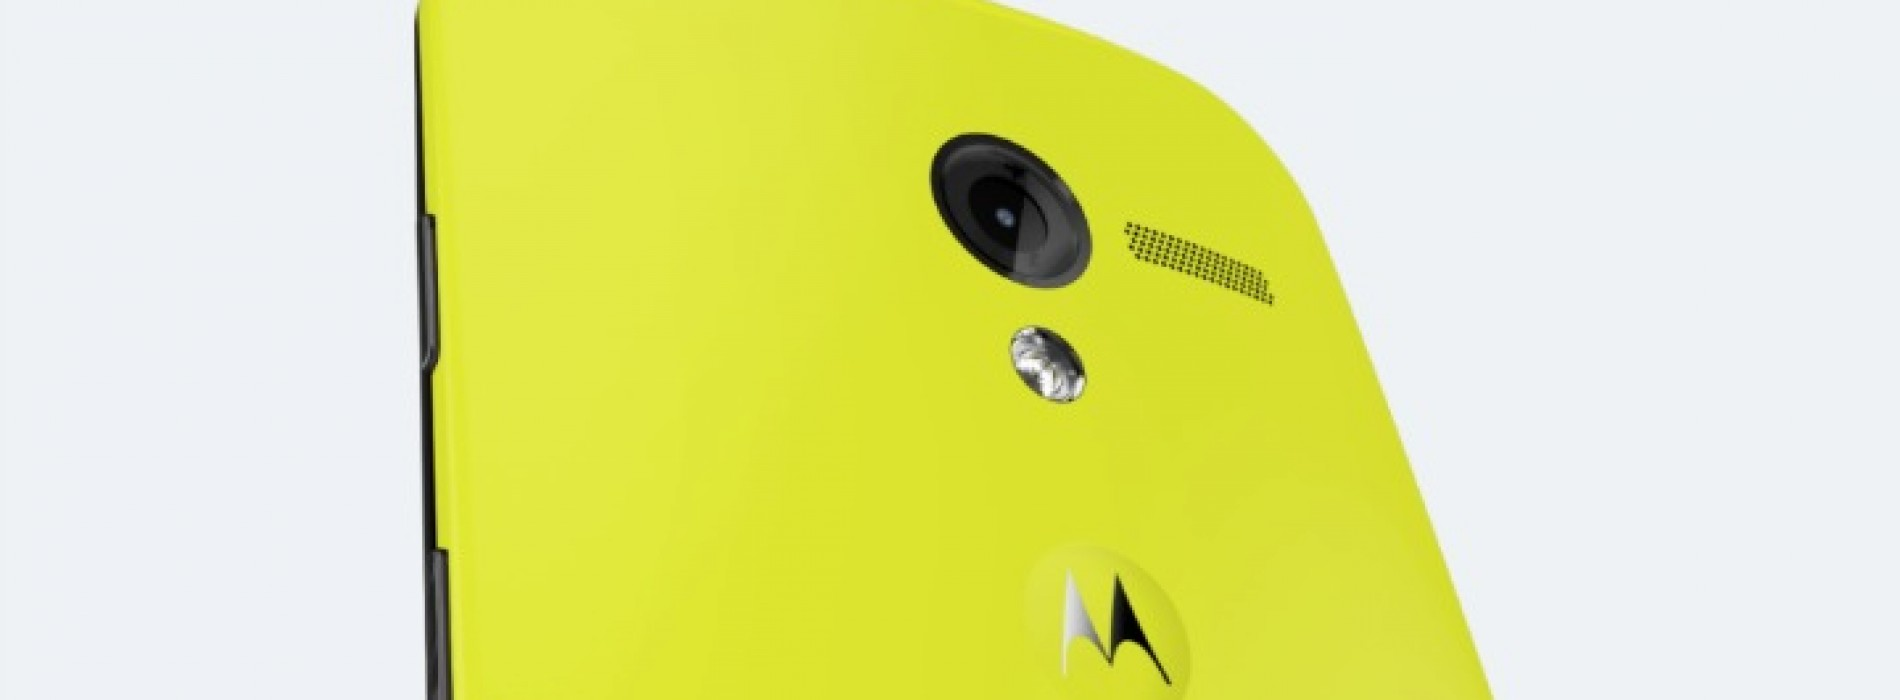 ABI Research: Moto X more innovative than iPhone 5S